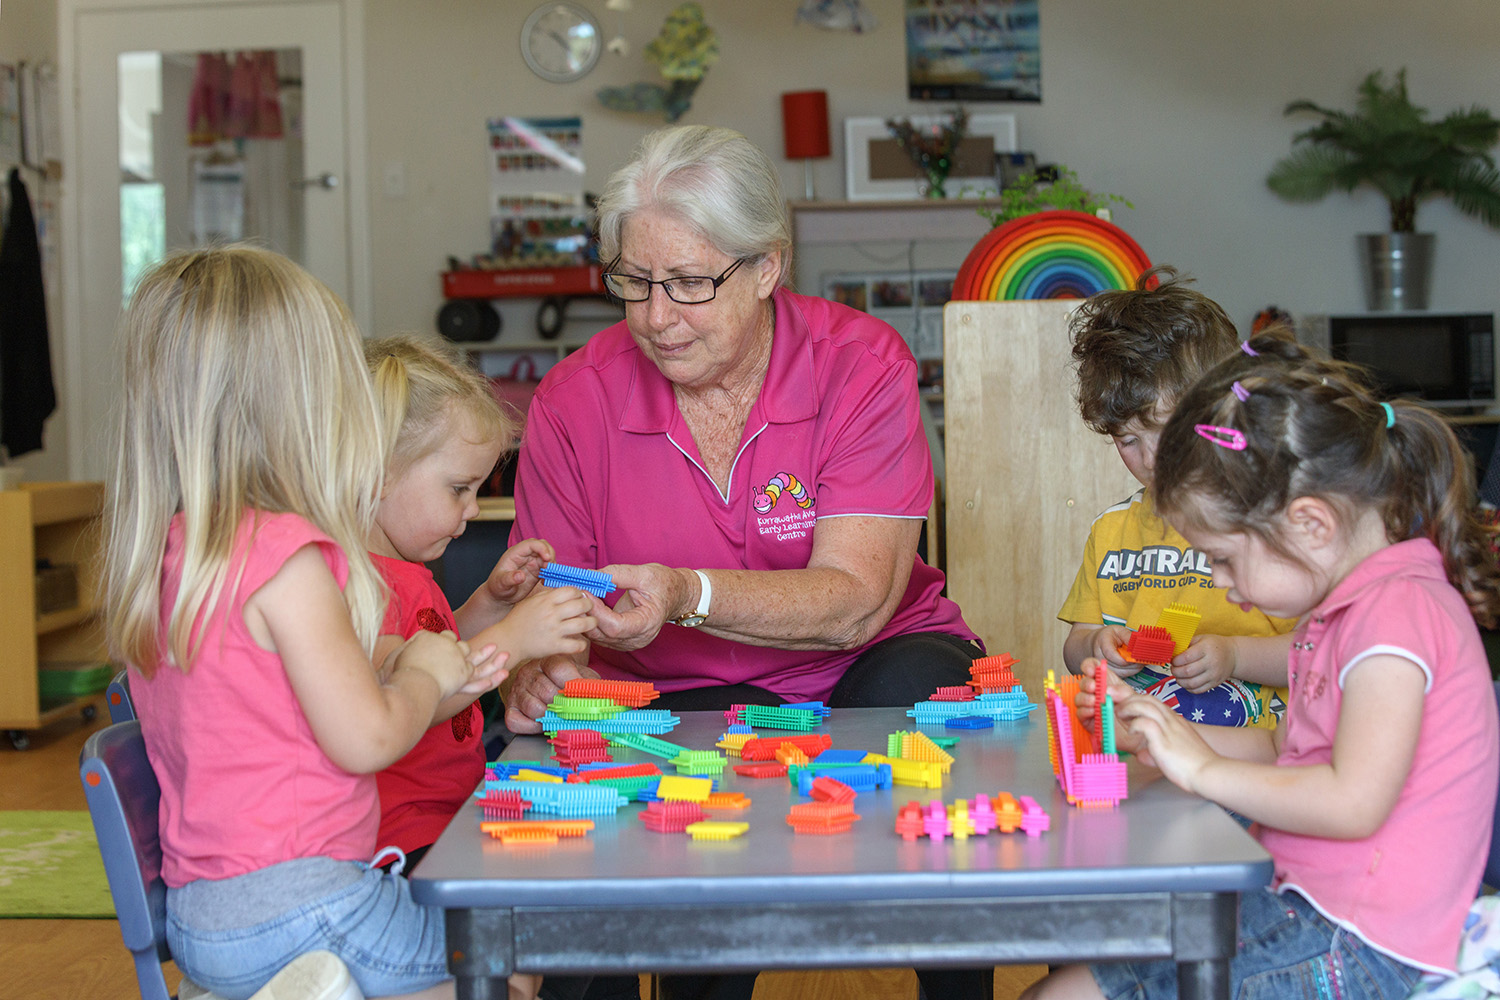 Child care educator playing puzzles with group of children at Kurrawatha ELC